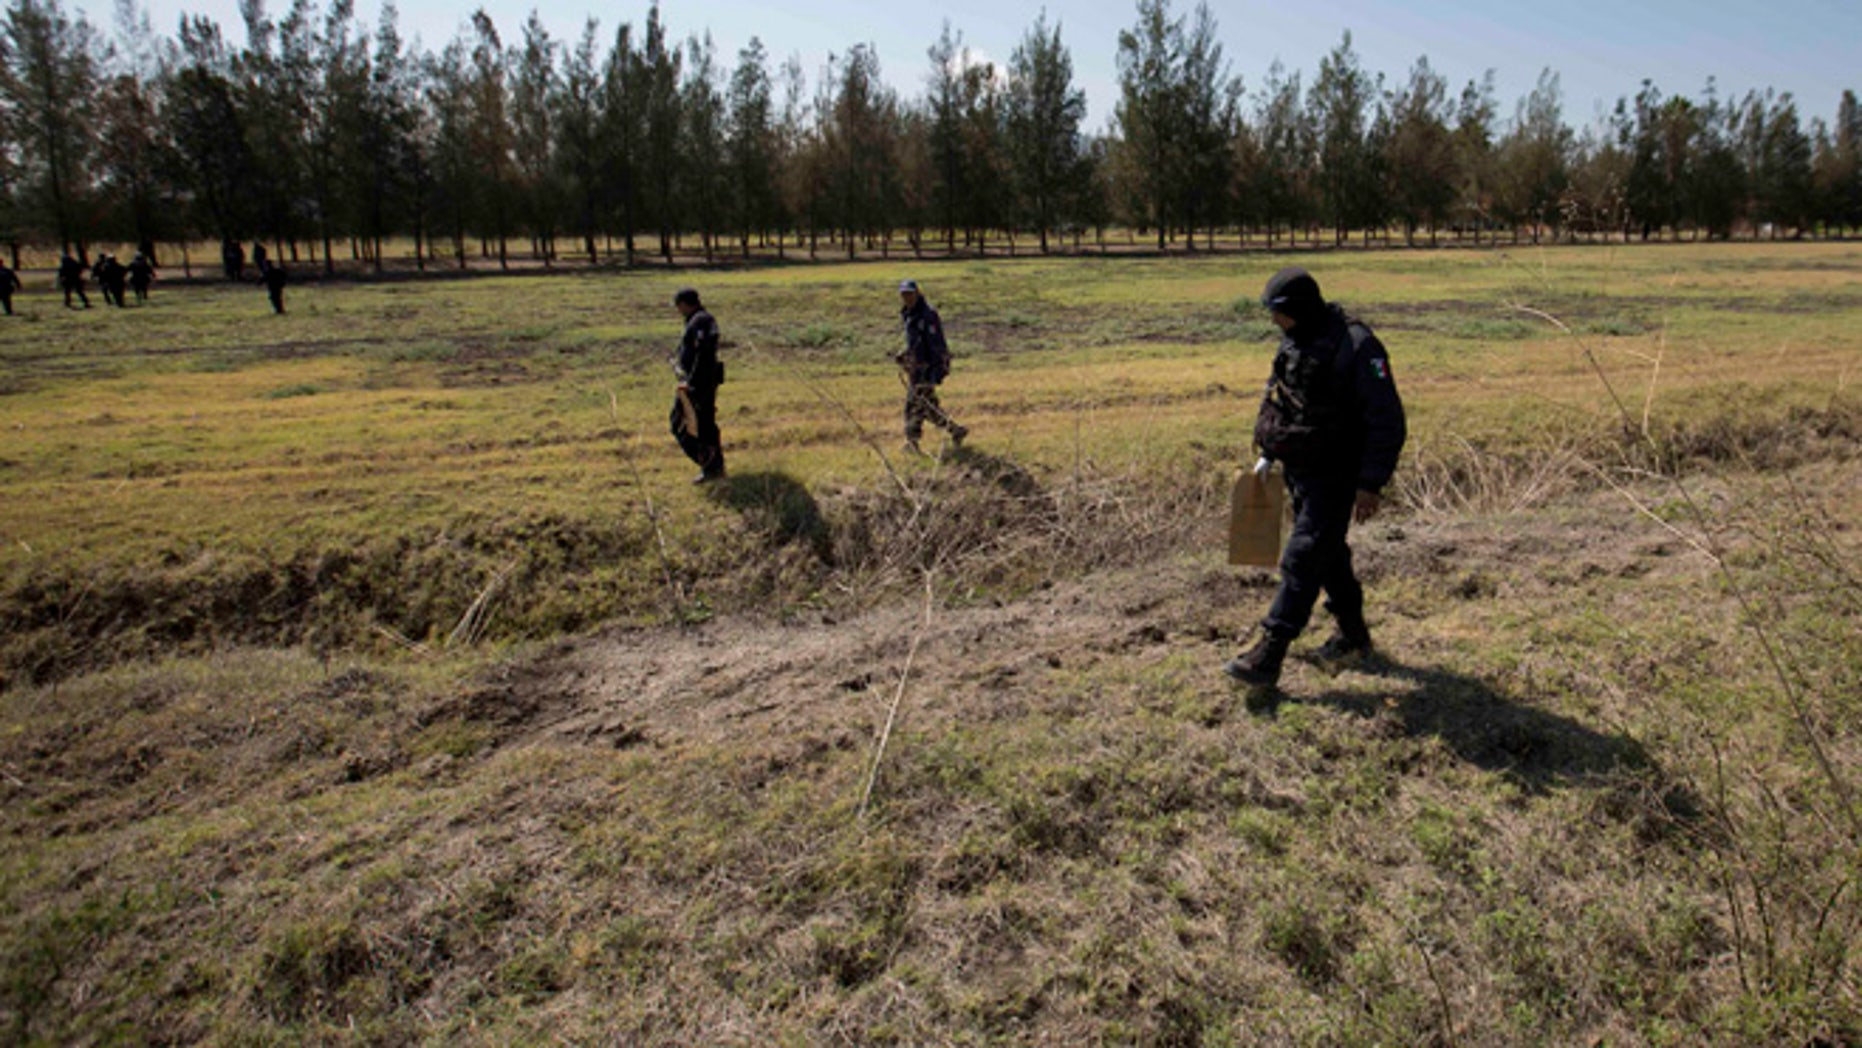 Police comb a field for evidence in the Rancho del Sol, a ranch in the municipality of Ecuandureo, Mexico, Saturday, May 23, 2015. The latest in a series of clashes between Mexican authorities and a powerful, fast-growing drug cartel turned into the deadliest confrontation in recent memory, with 42 suspected gang gunmen and one Federal Police officer killed on Friday during a three-hour firefight at this remote western ranch. (AP Photo/Eduardo Verdugo)